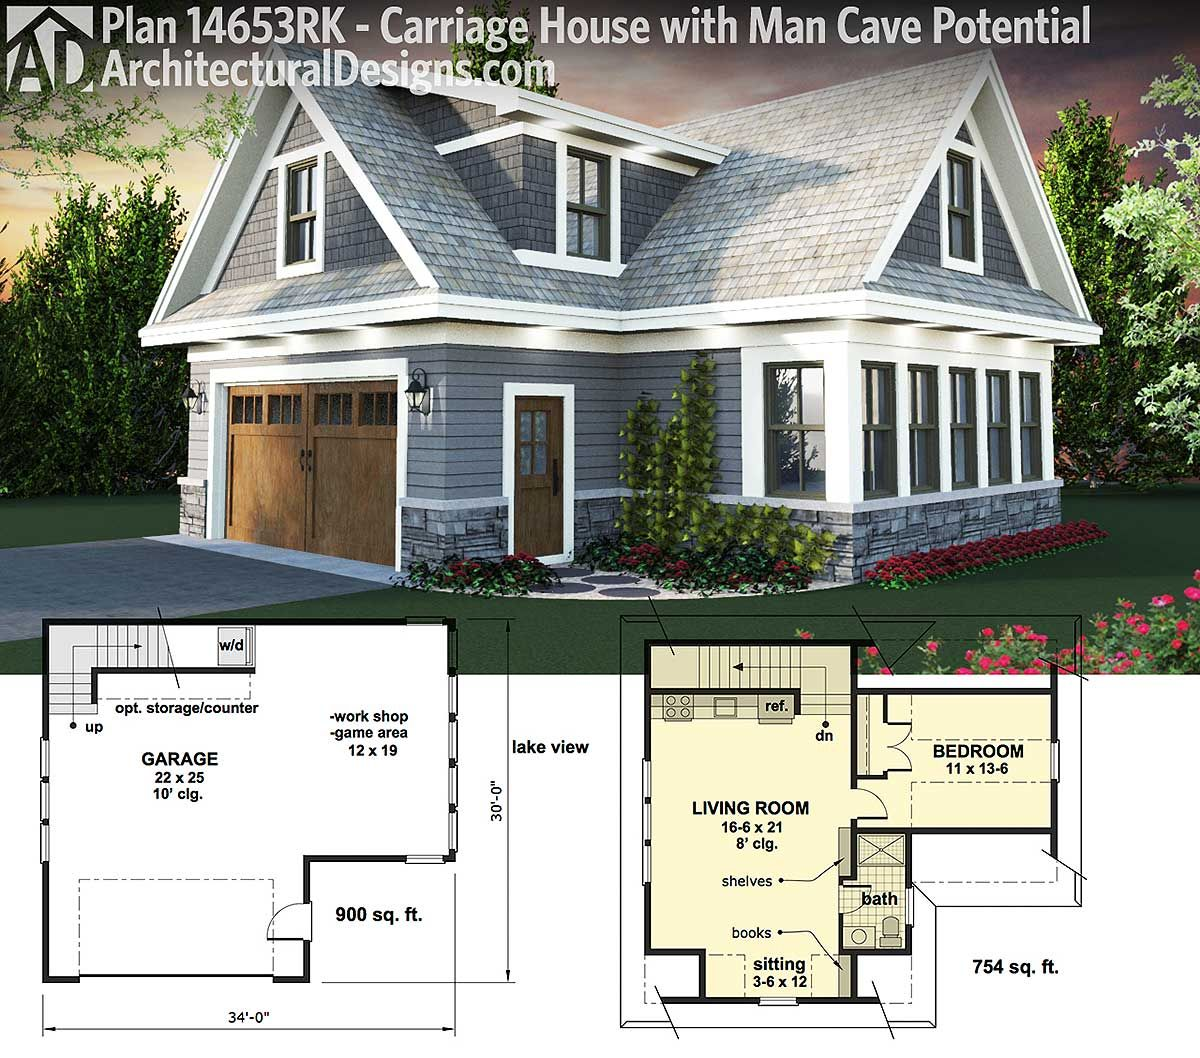 Plan 14653rk carriage house plan with man cave potential for Coach house plans